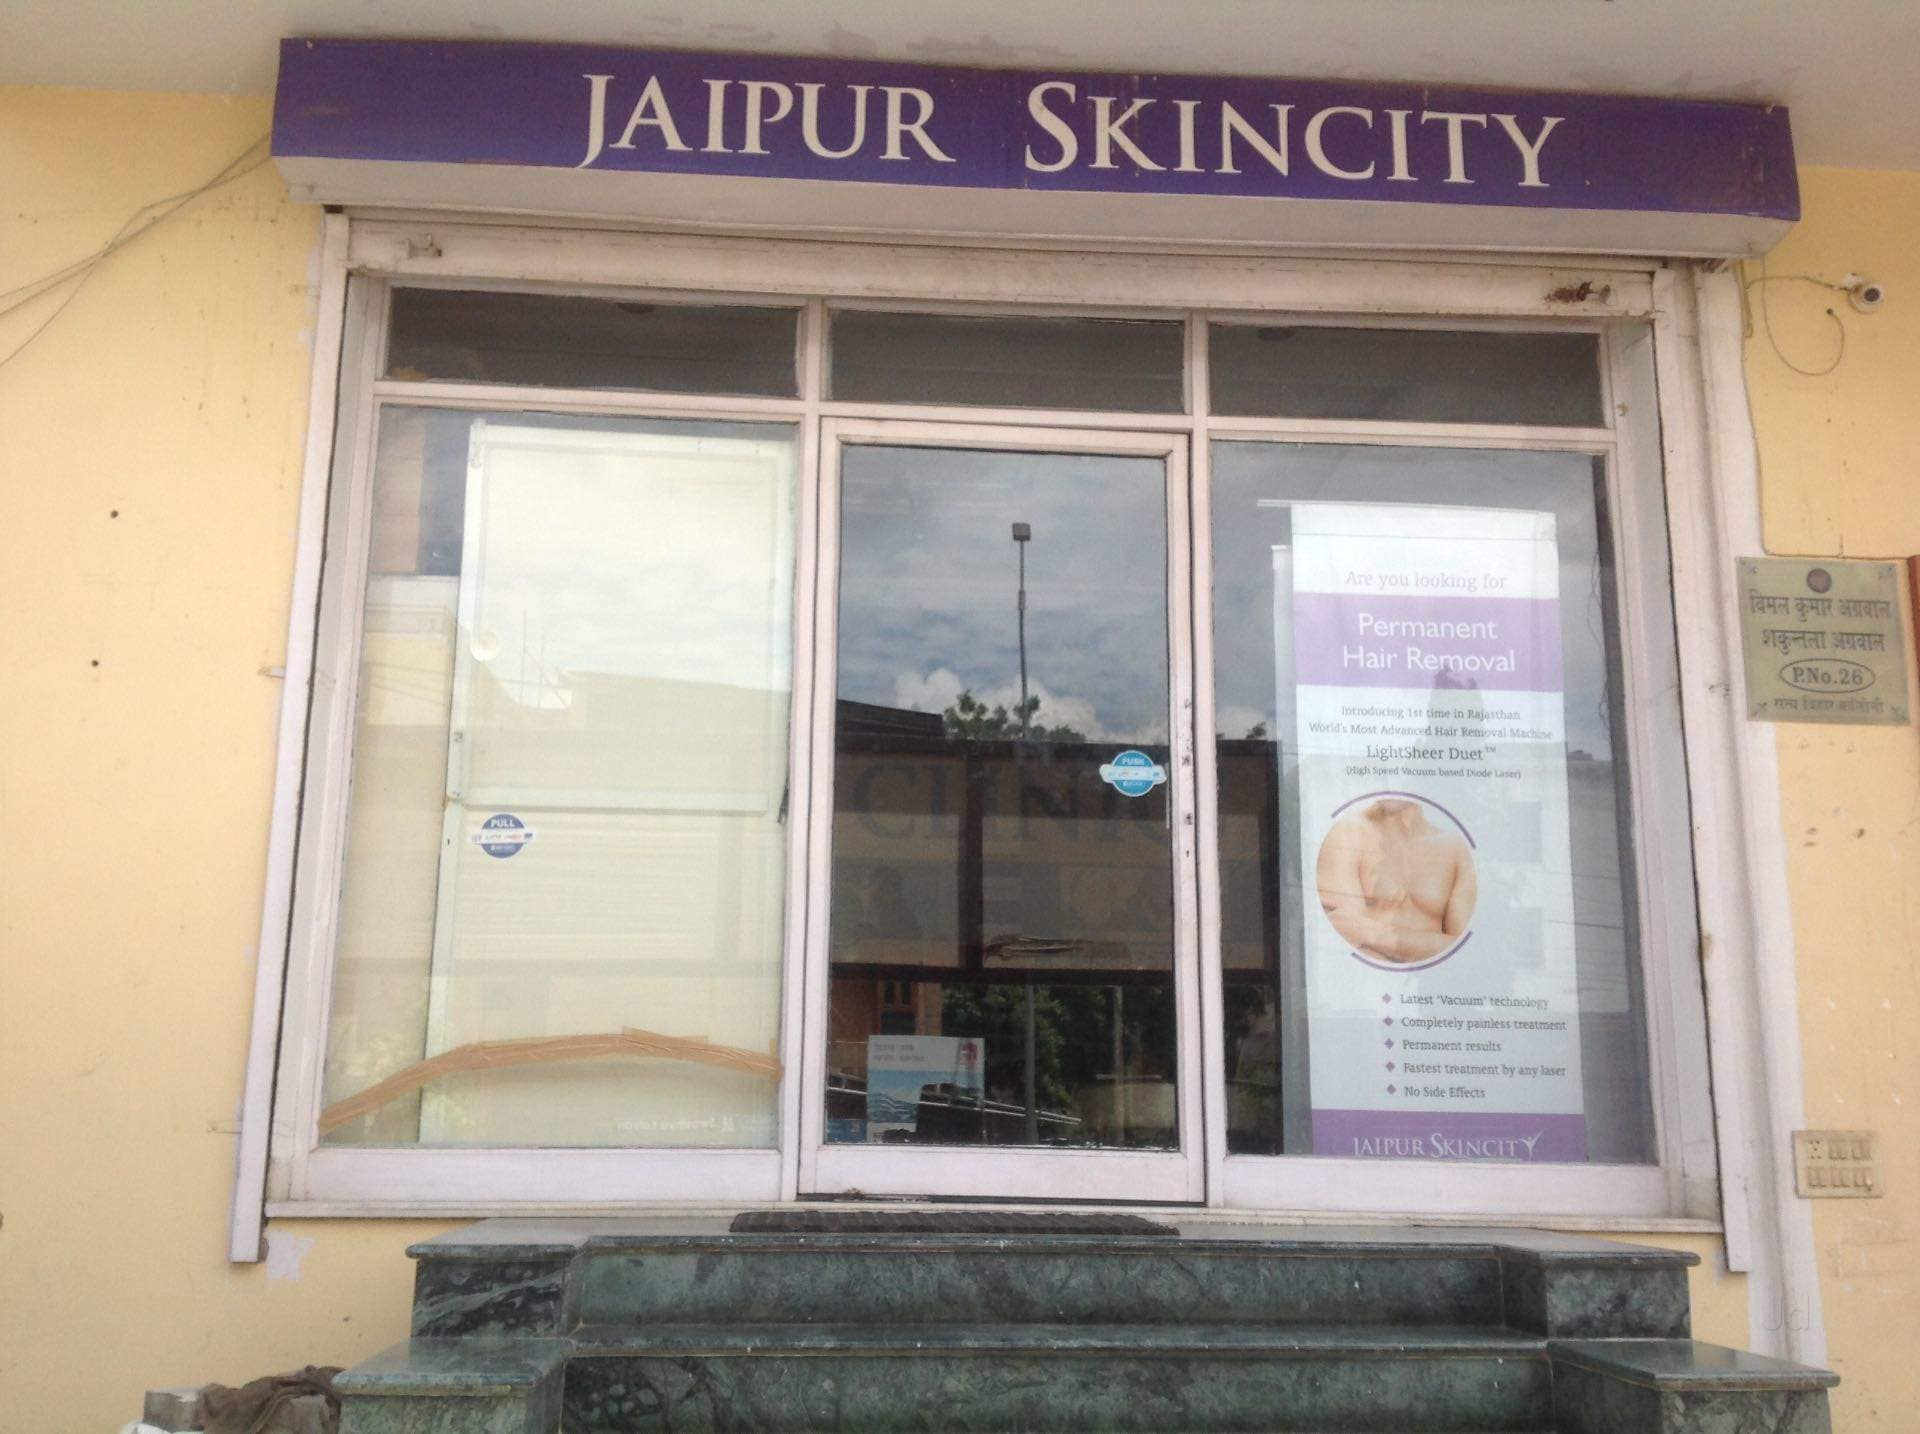 Best Laser Hair Removal Treatment in Jaipur - Book